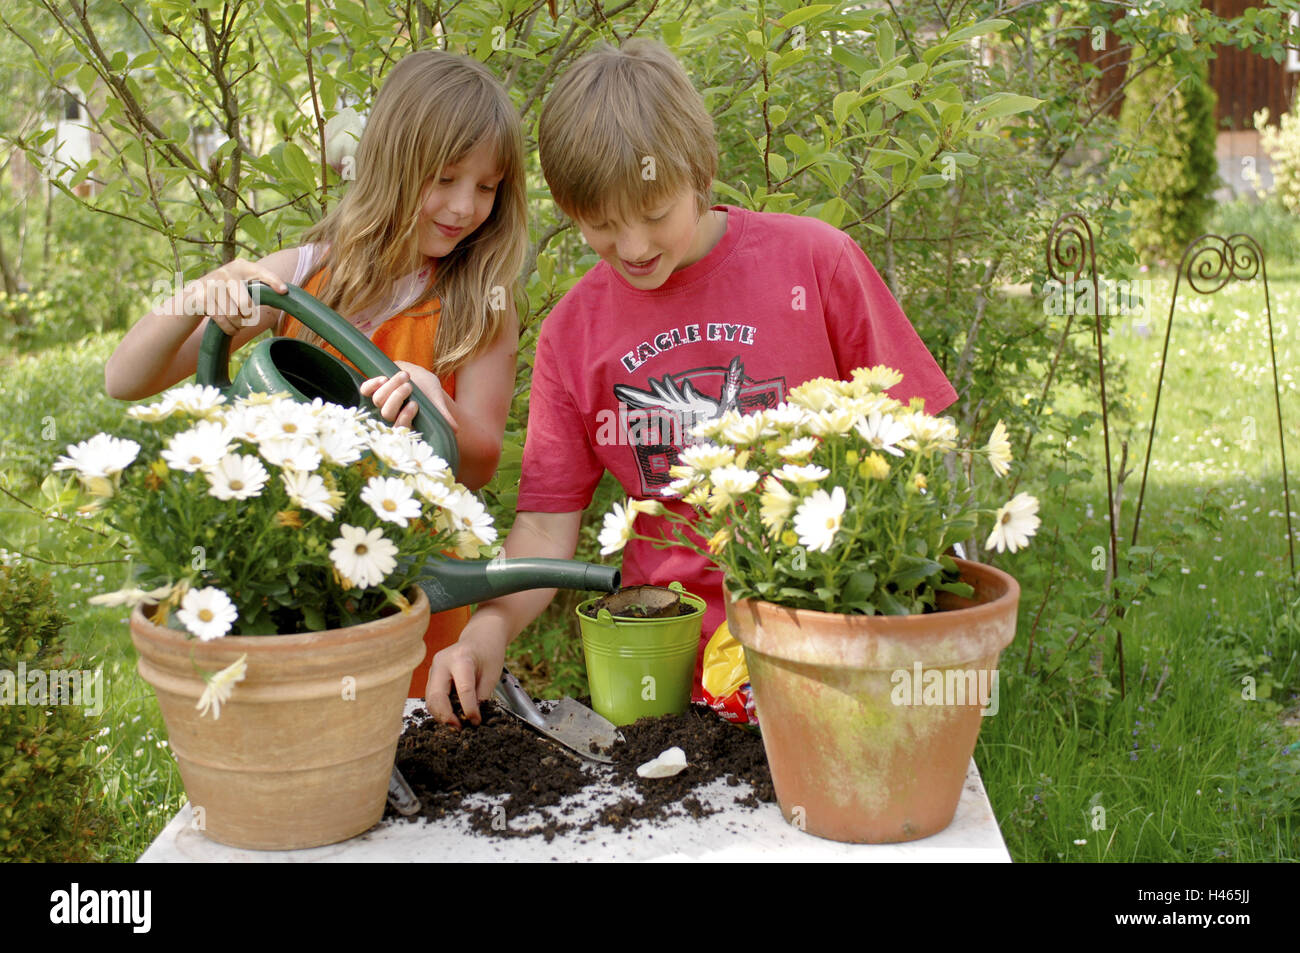 Girls, Boy, Garden, Flowers, Implant, Ground, Pflanzgefäße, Watering Can,  Person, Children, Siblings, Two, Leisure Time, Hobby, Career Plans, Flower  Care, ...